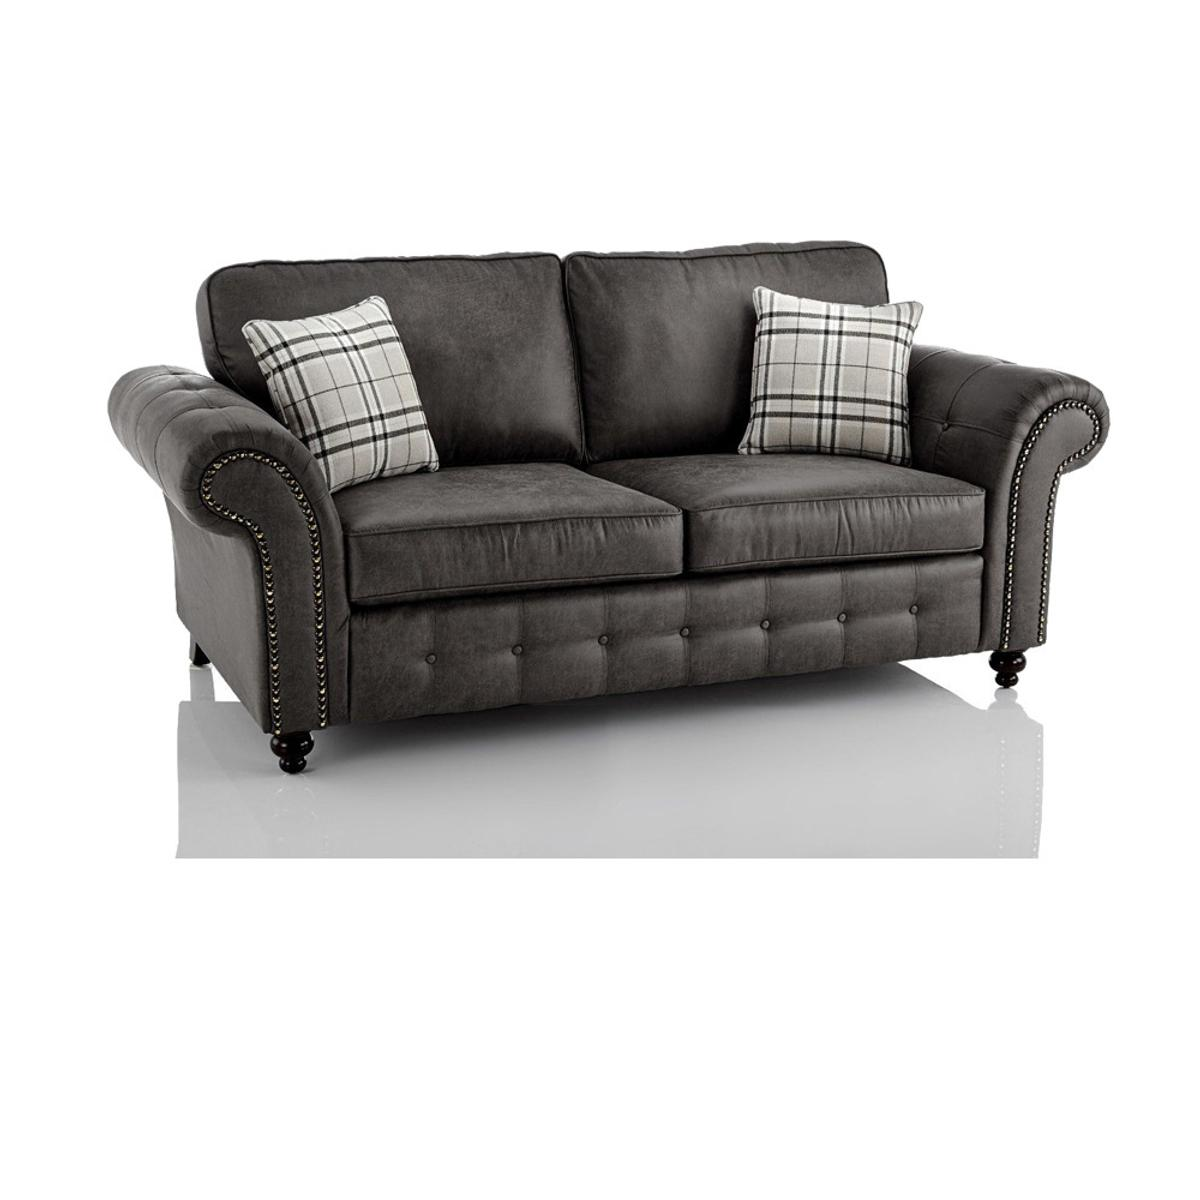 Oakland 3 Seater Sofa Grey In Wr1 1pb